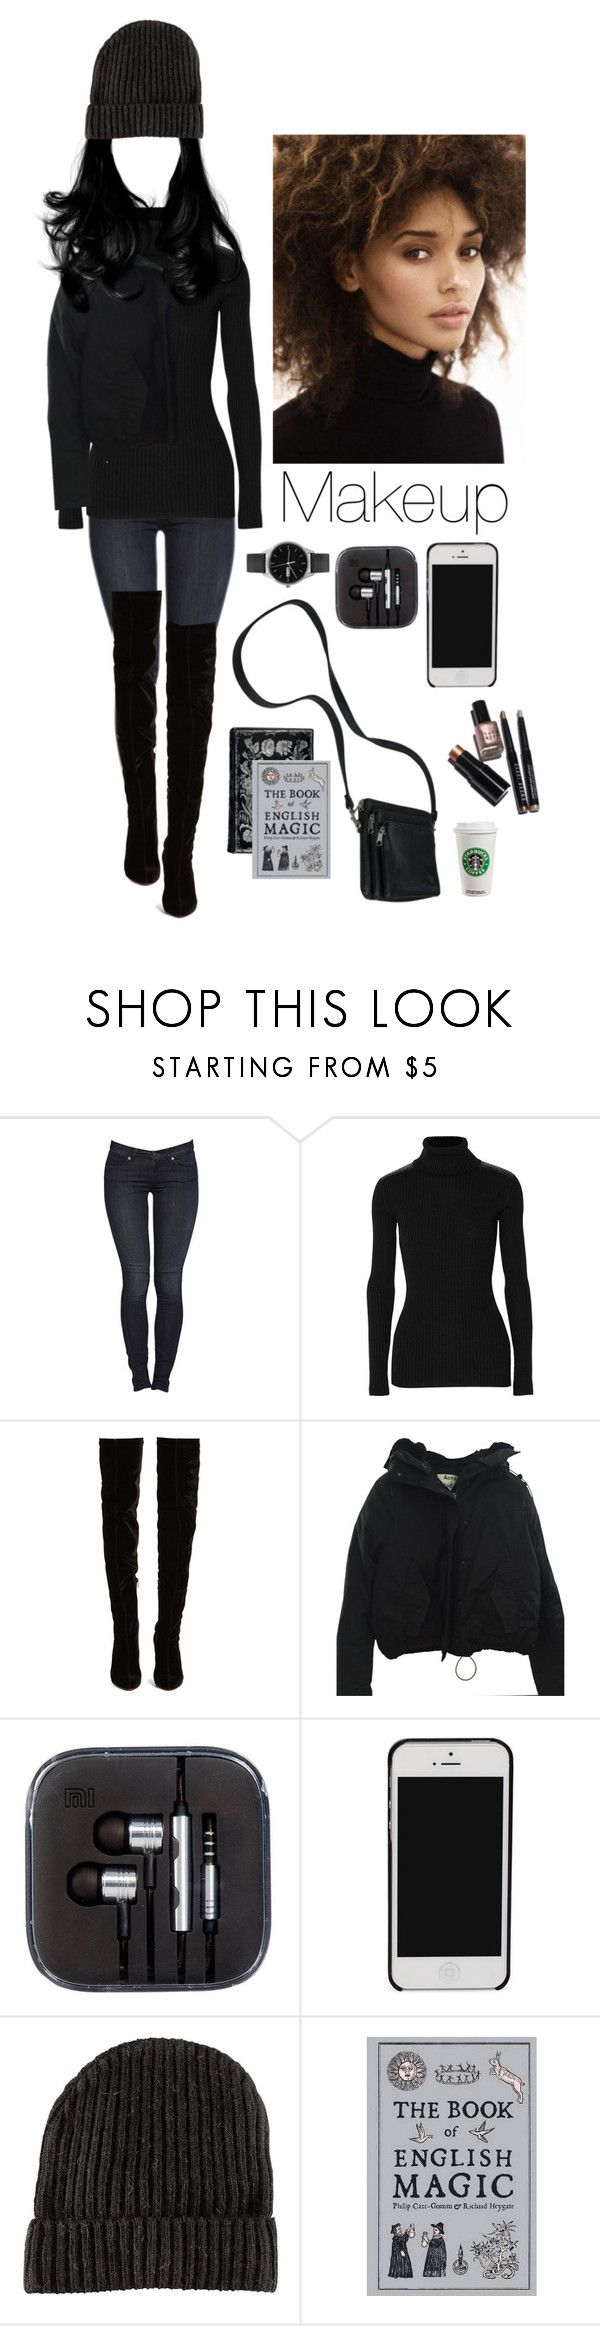 """""""A modern witch."""" by sweetdreamer13 ❤ liked on Polyvore featuring Autumn Cashmere, Christian Louboutin, Acne Studios, H&M, CO, Uniform Wares, Bobbi Brown Cosmetics and modern"""